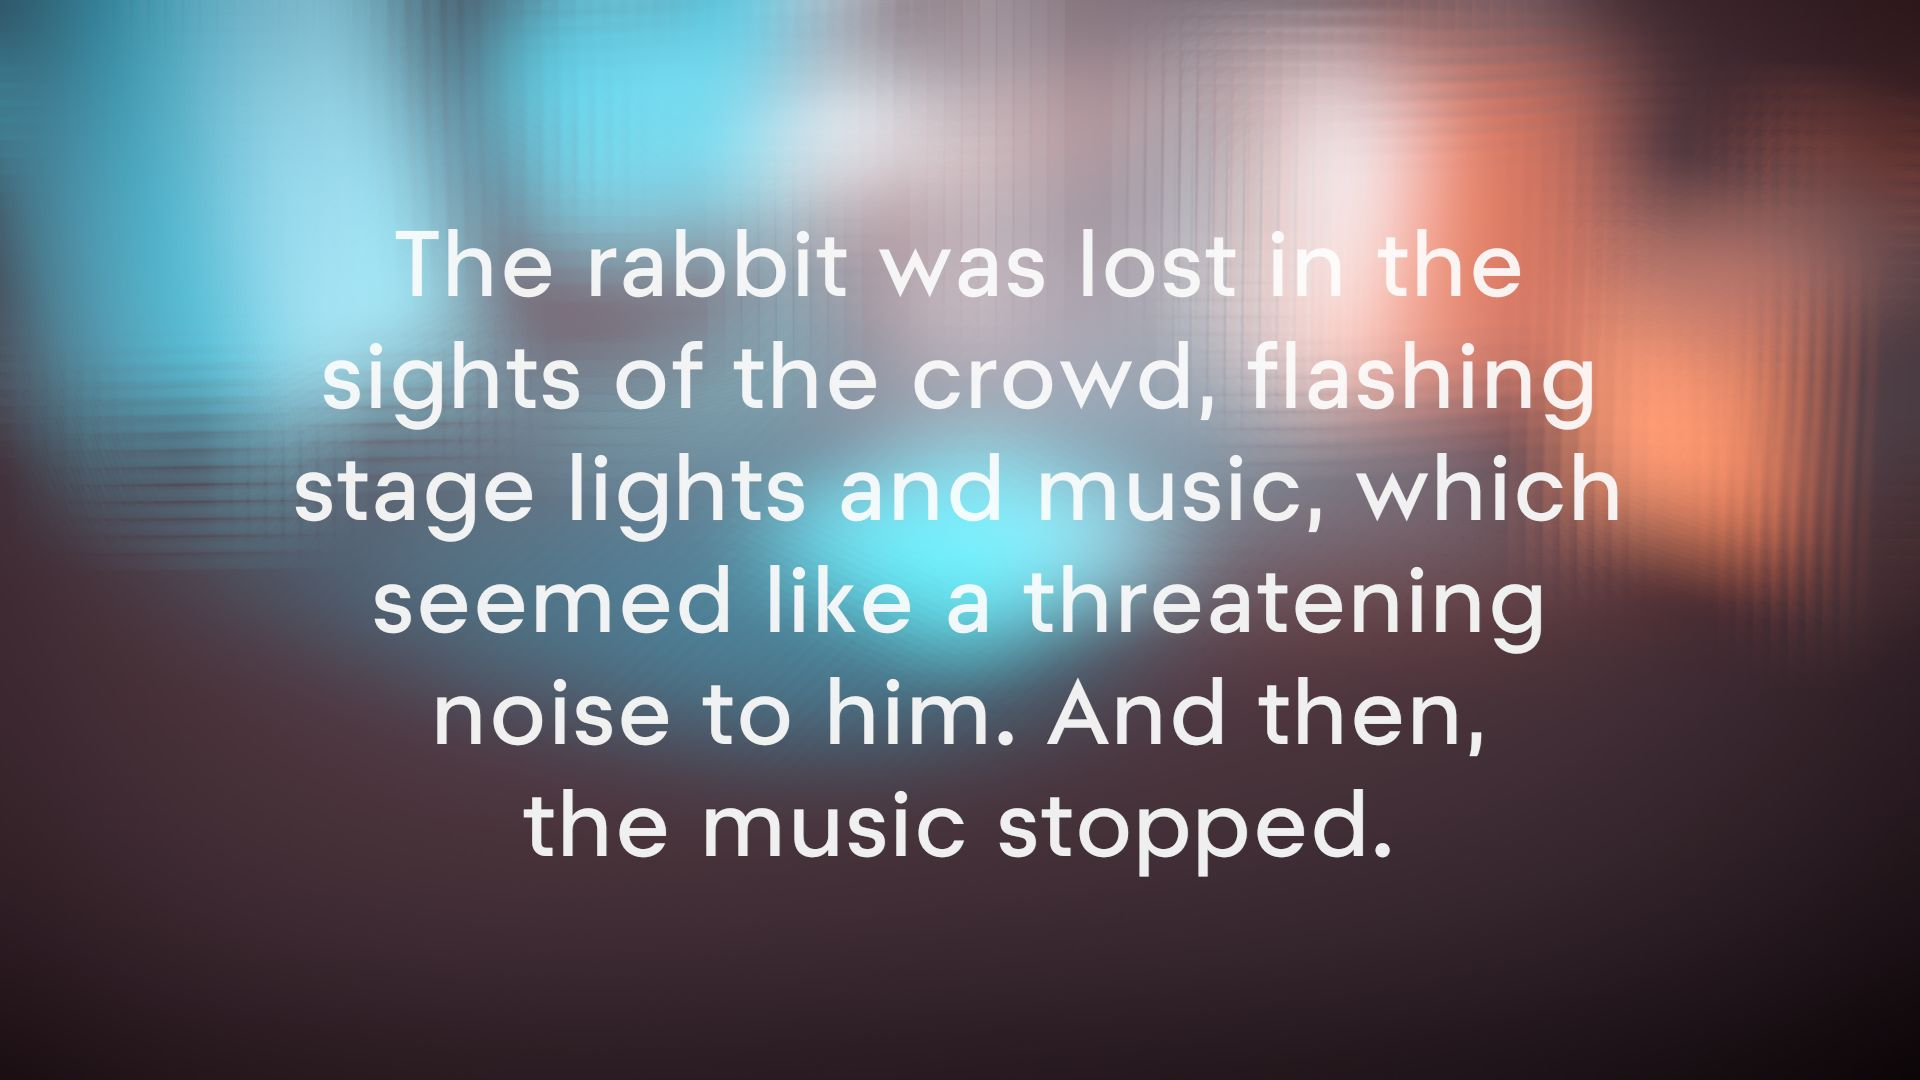 A screenshot showing a bit of the story told in between levels in Hadr. It reads 'The rabbit was lost in the sights of the crowd, flashing stage lights and music, which seemed like a threatening noise to him. And then, the music stopped.